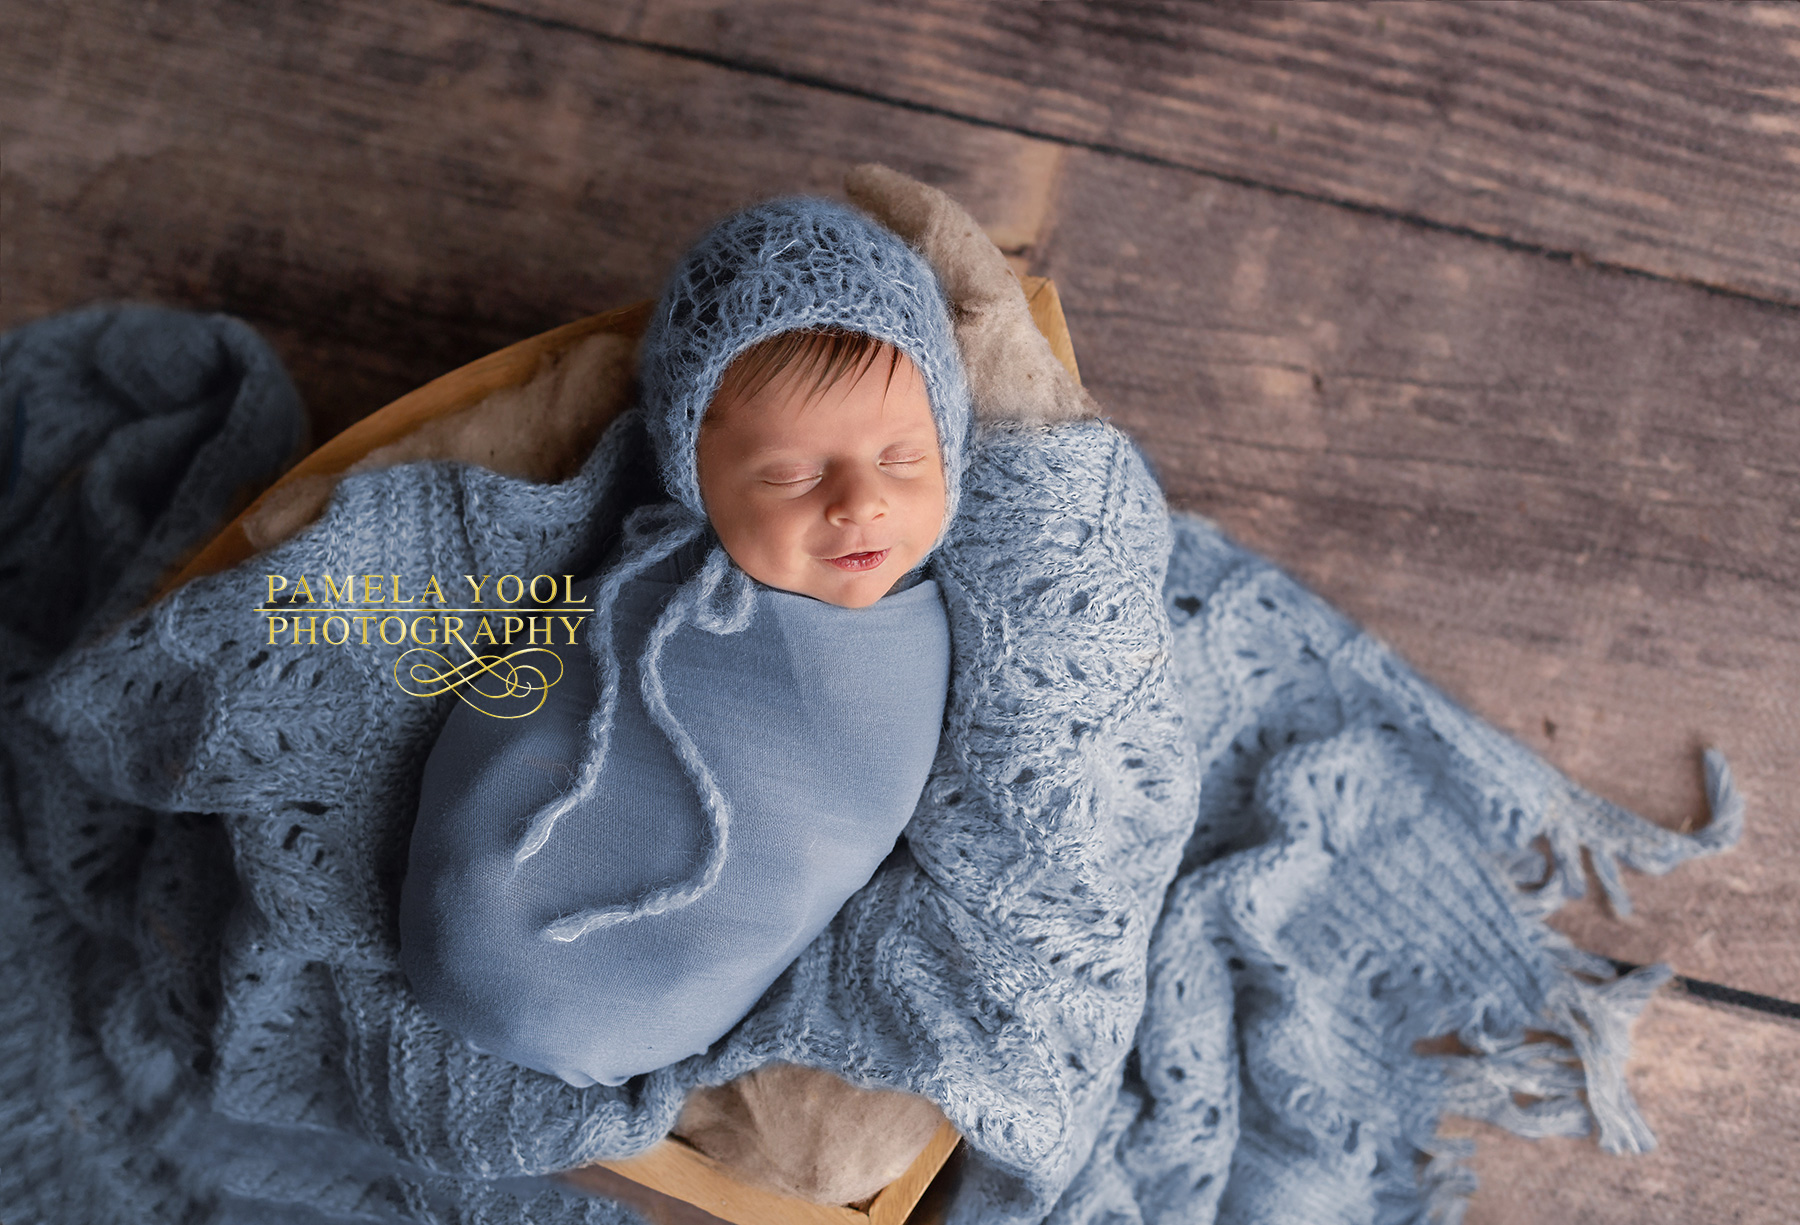 Smiling Newborn in Blue Original Pho